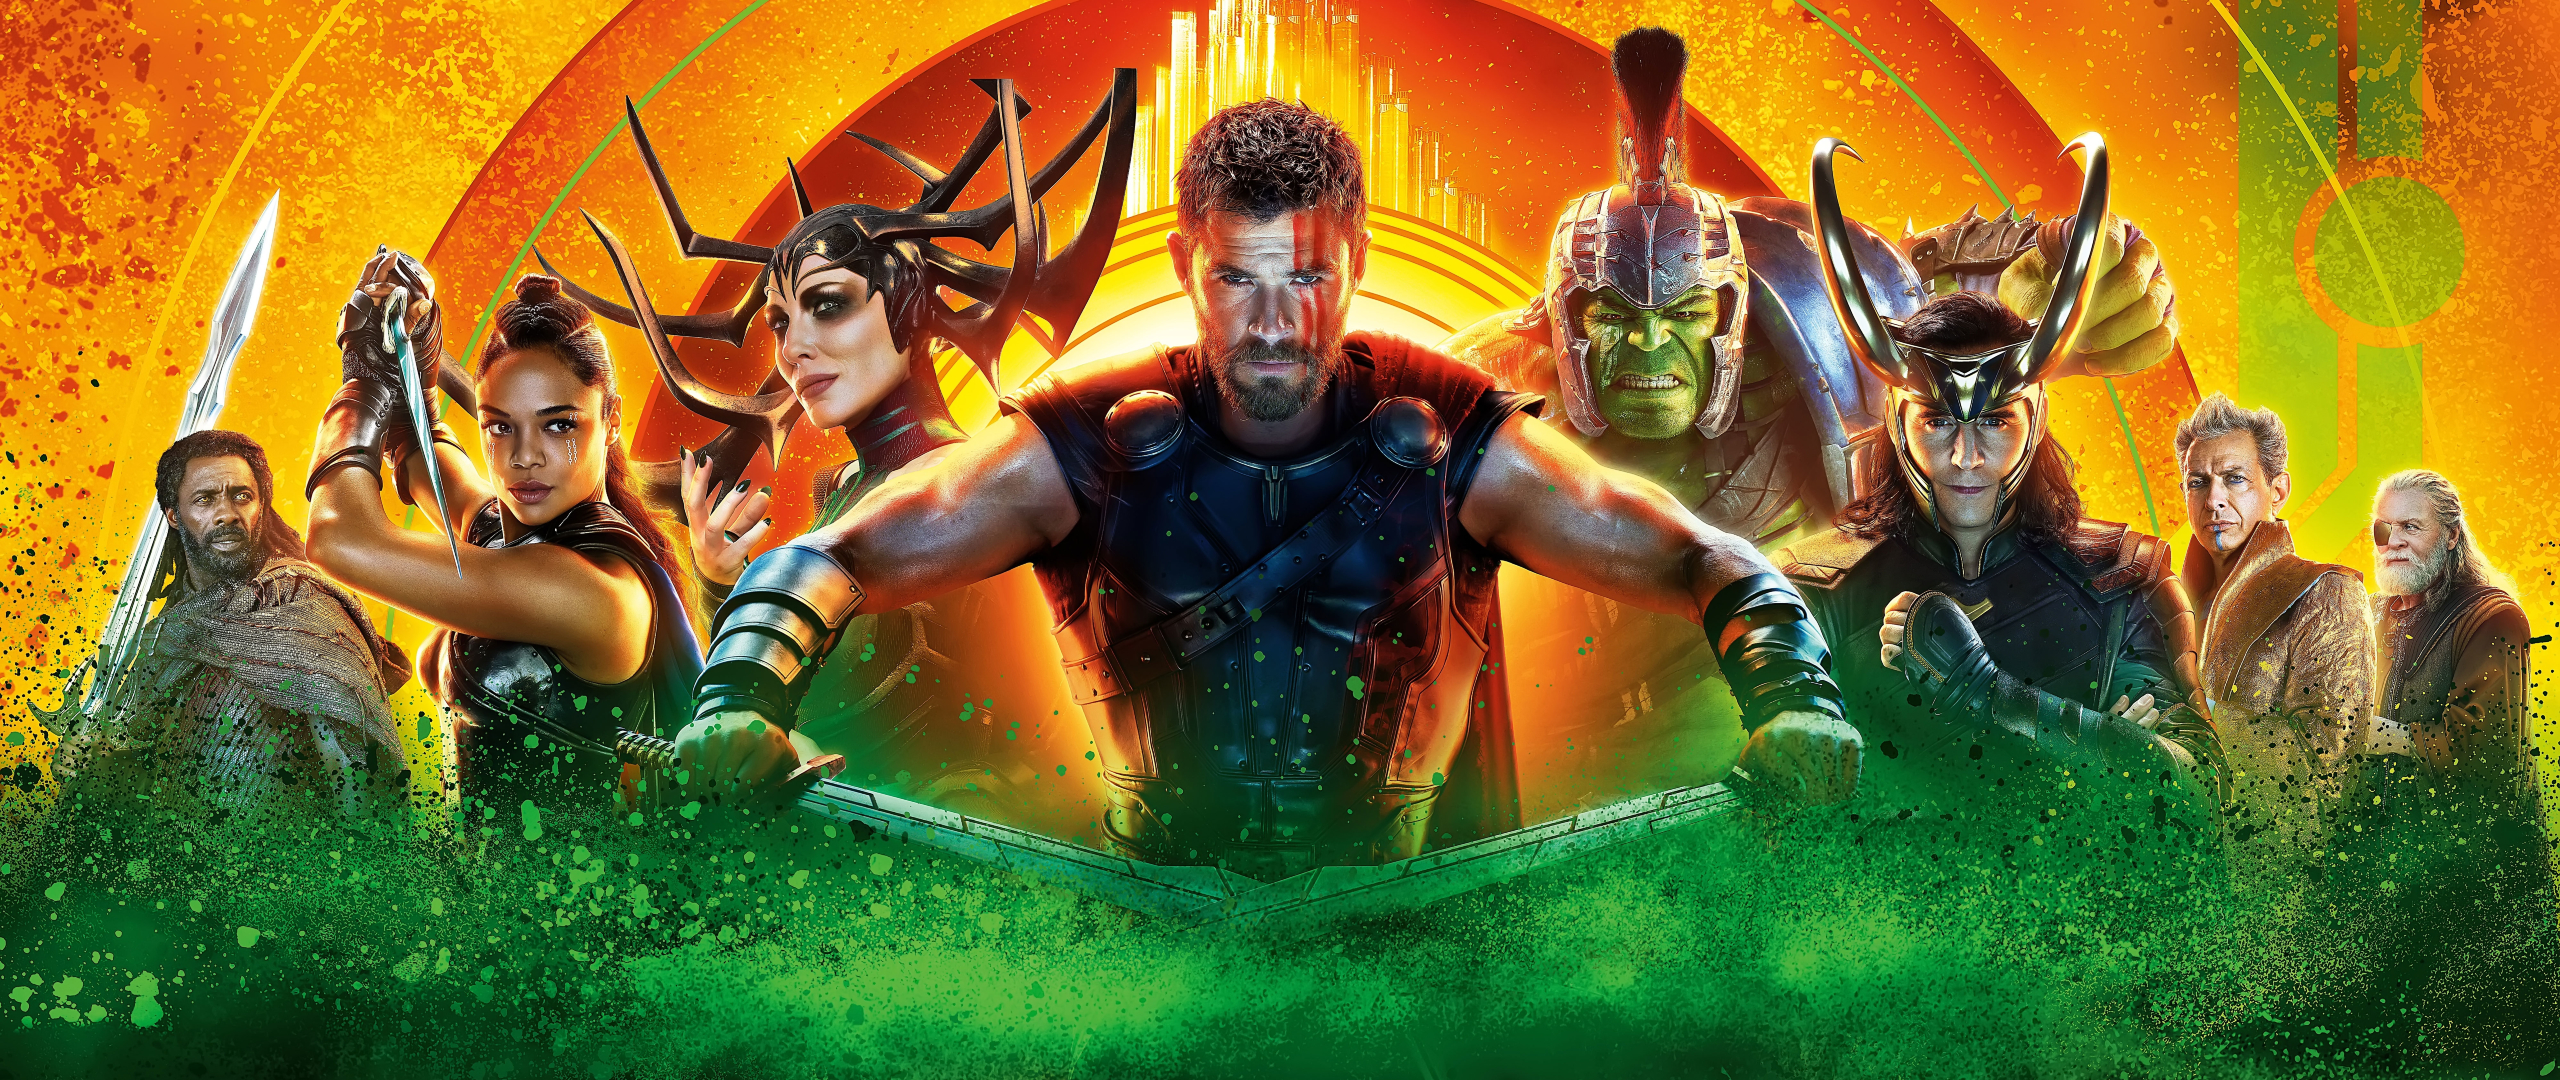 wallpapersden.com_thor-ragnarok-2017-movie-2017_2560x1080